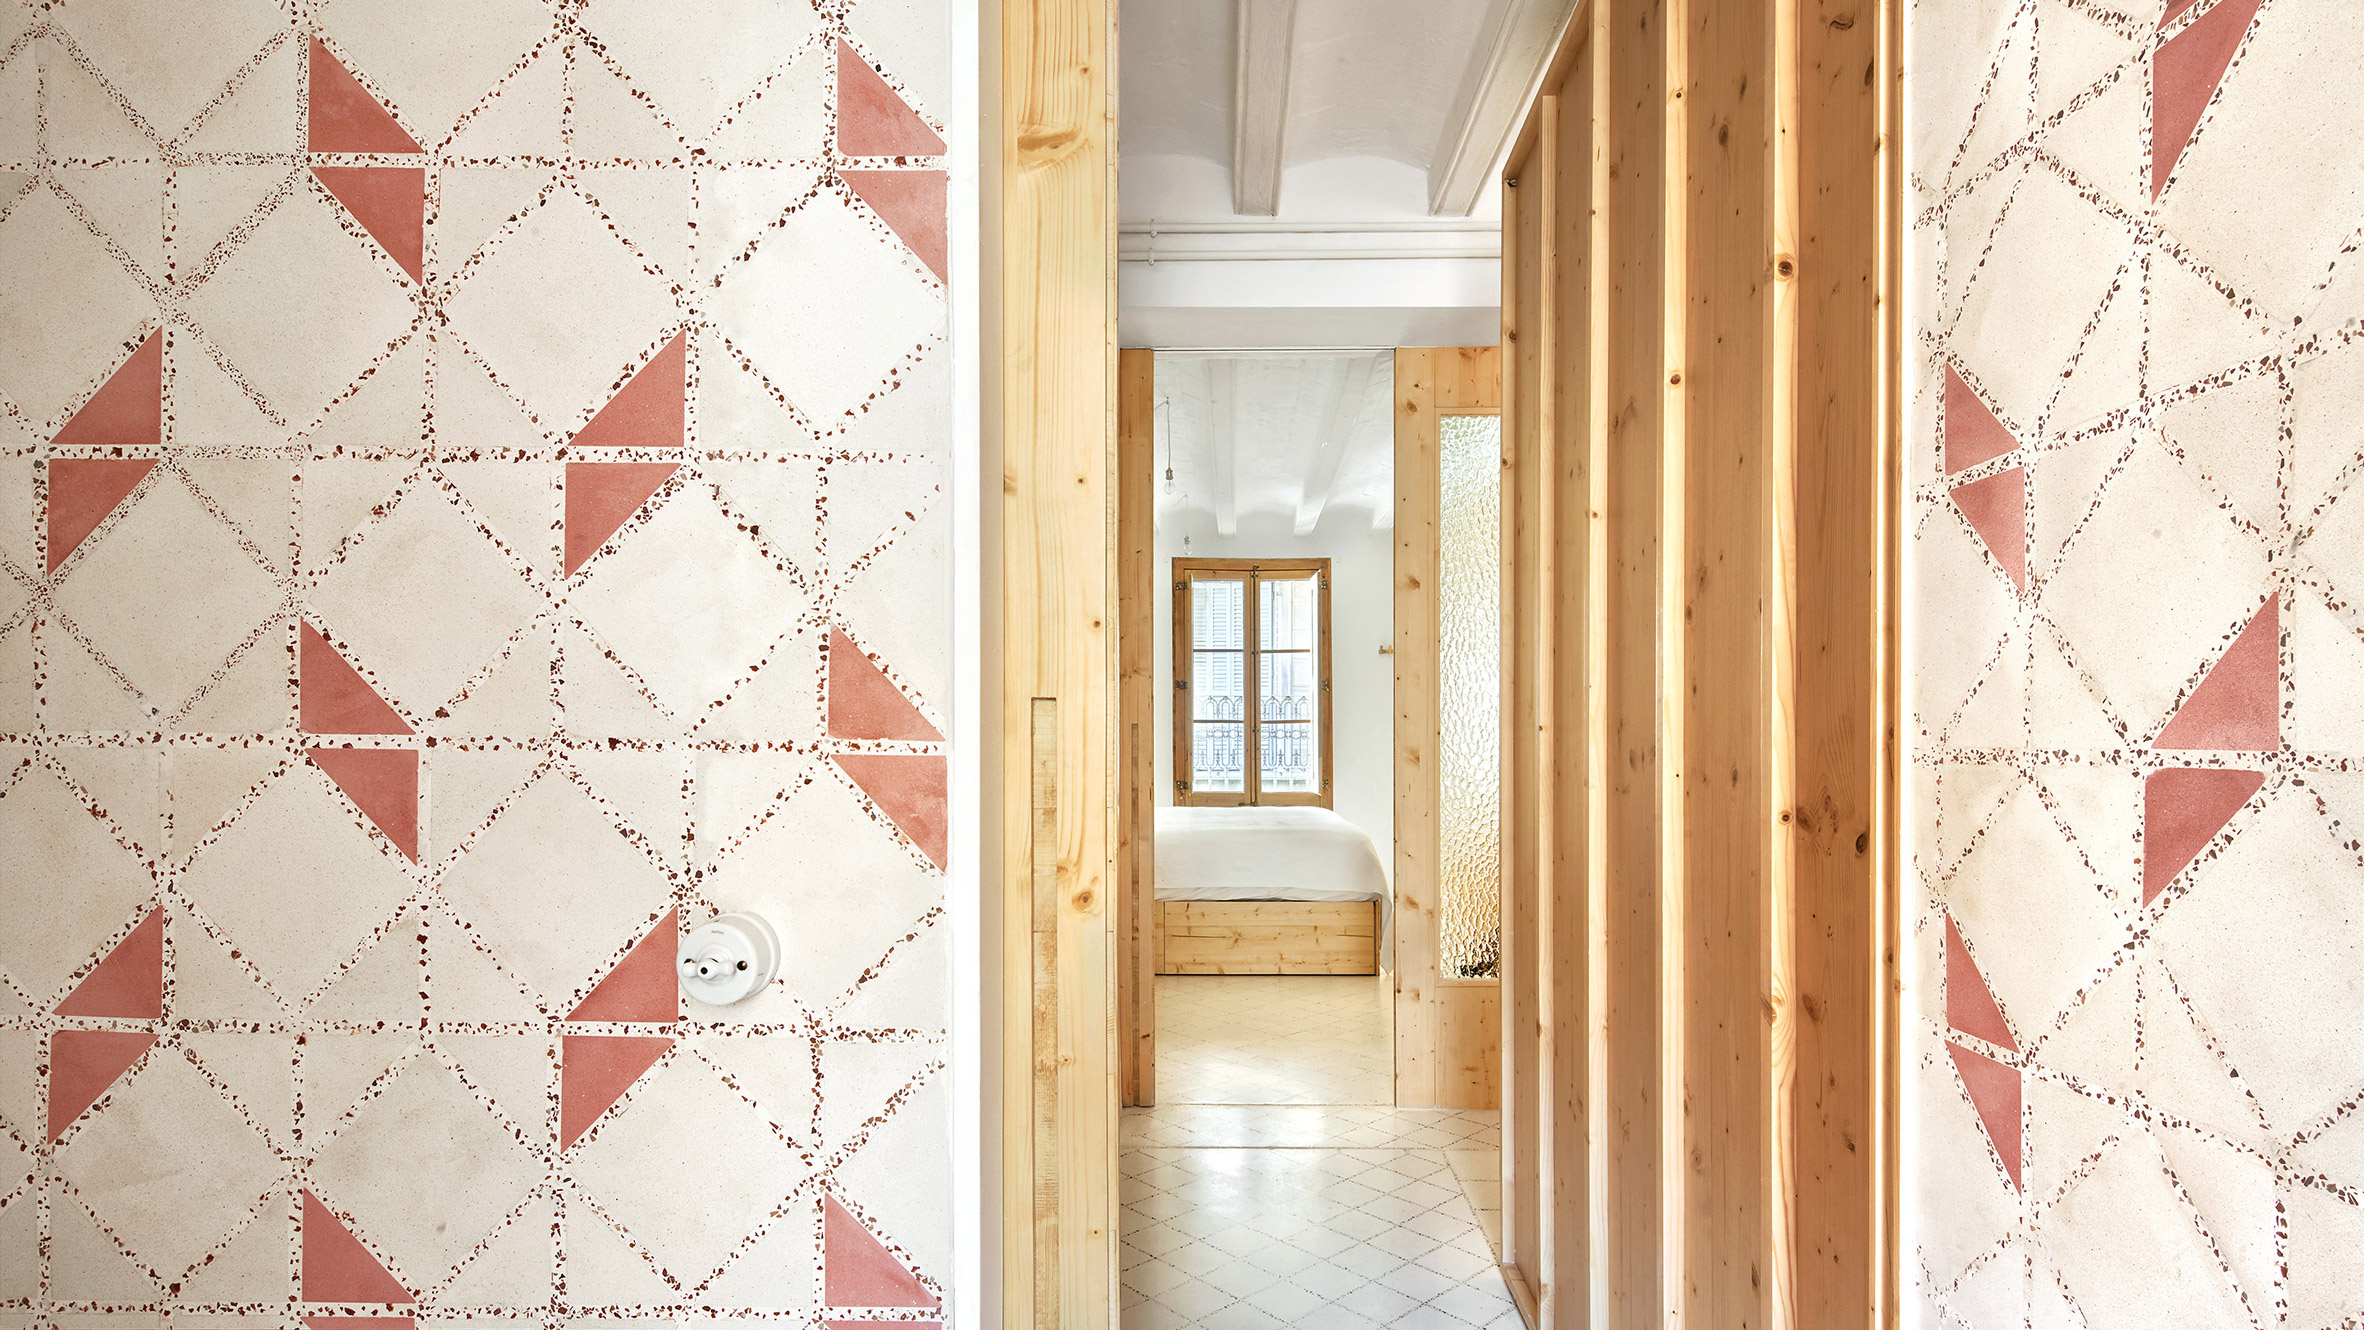 Crushed Tiles Provide Terrazzo Details In Laia And Biel S